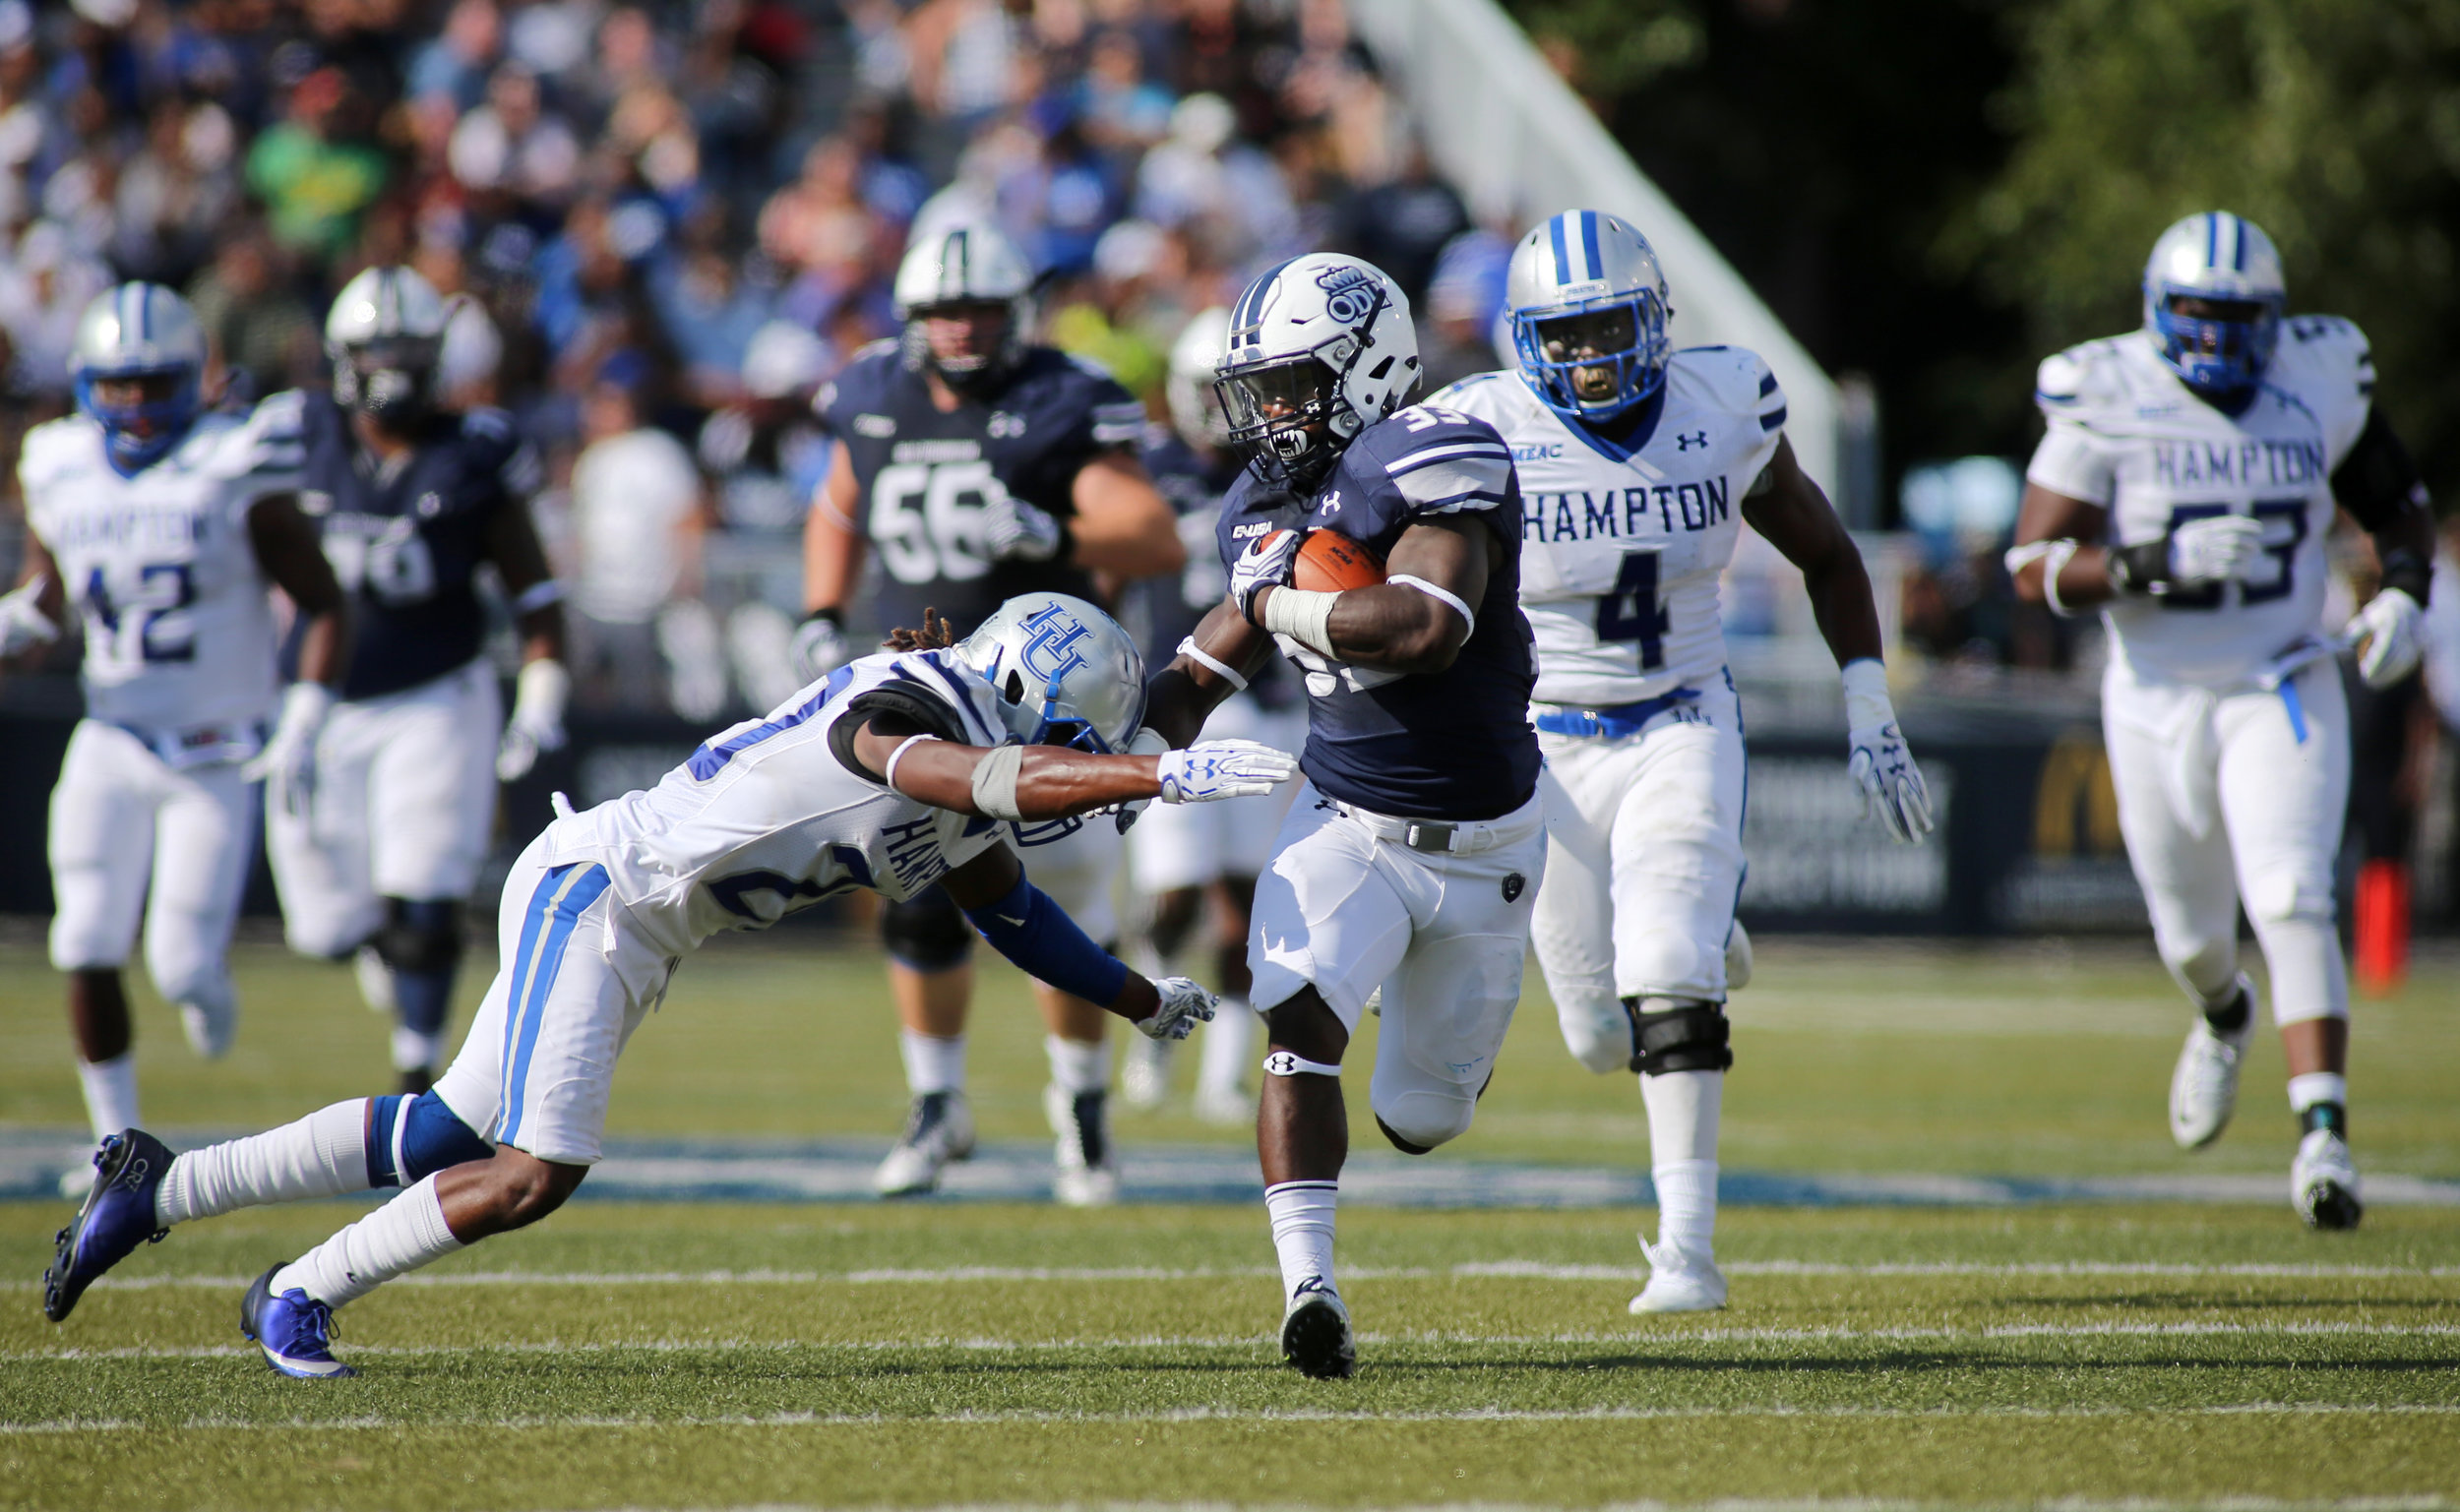 Old Dominion's Ray Lawry finds a seam past Hampton defender Myles Morris for a second quarter gain, Sunday, Sept. 4, 2016 at Foreman Field in Norfolk.   (Jason Hirschfeld | The Virginian-Pilot)